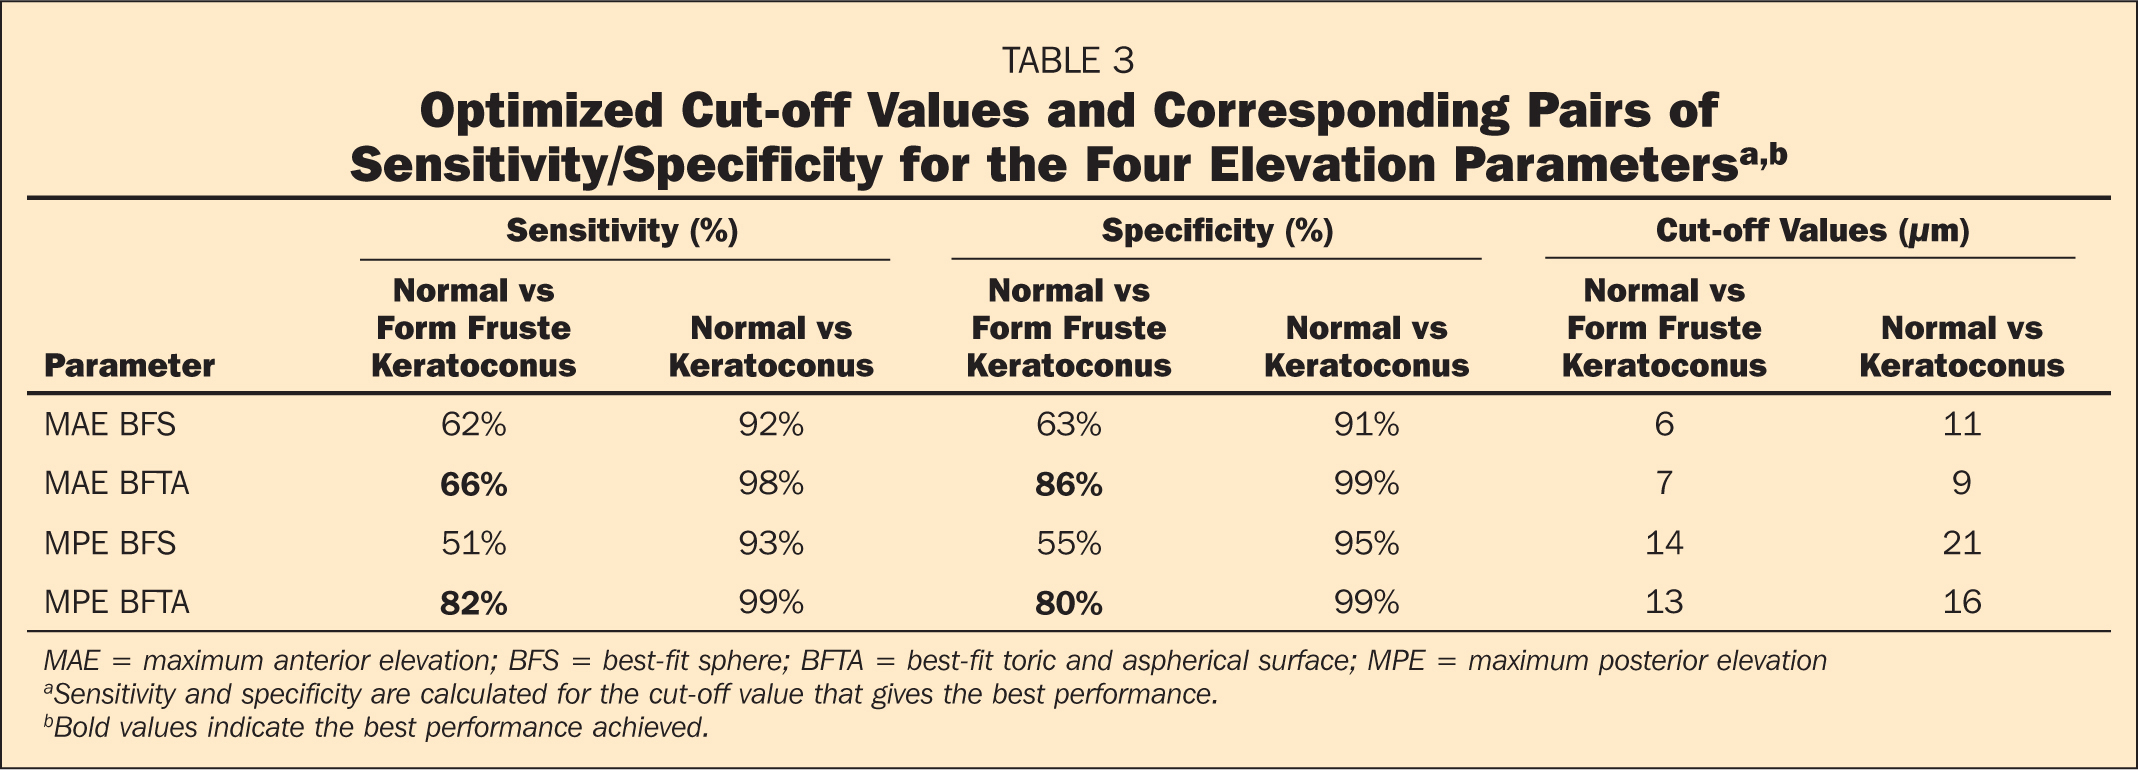 Optimized Cut-off Values and Corresponding Pairs of Sensitivity/Specificity for the Four Elevation Parametersa,b